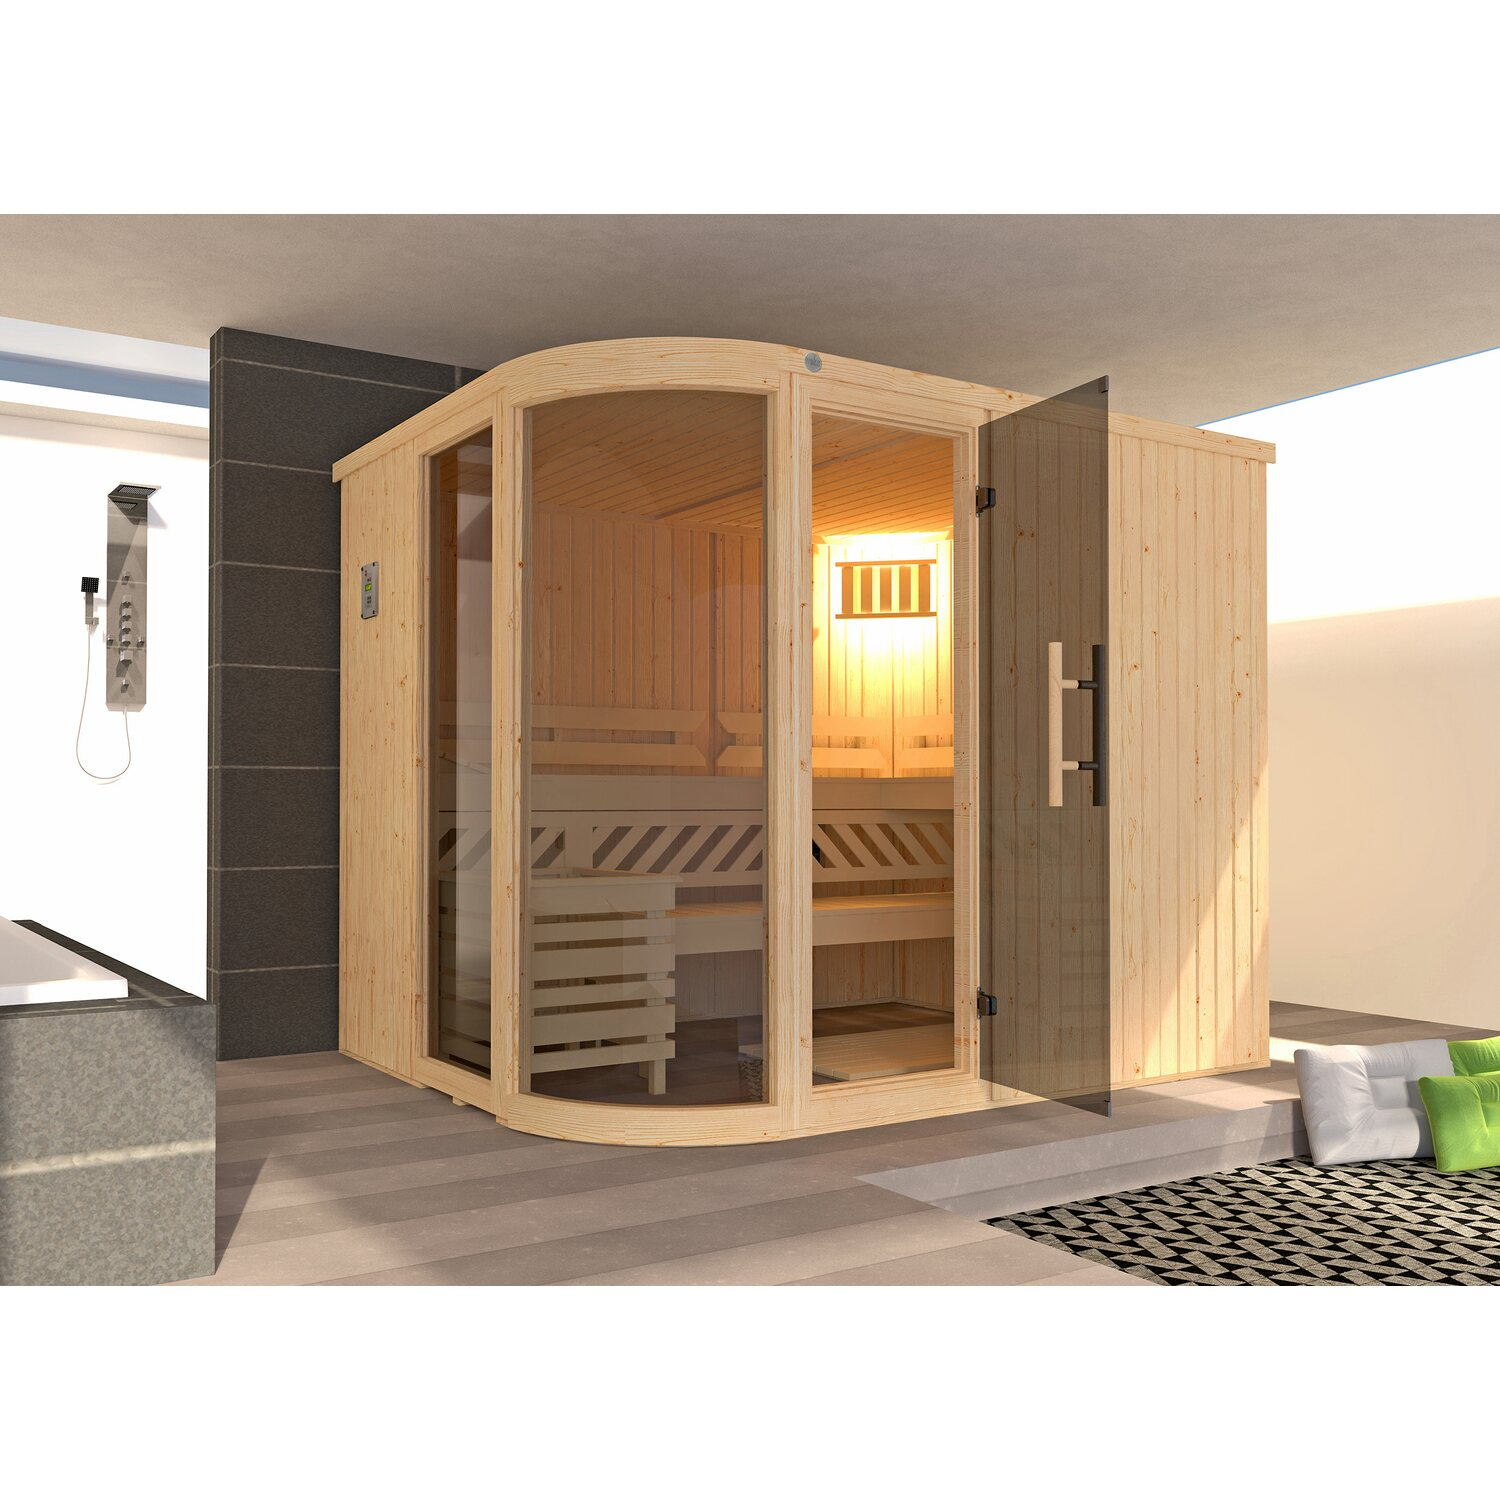 weka design sauna sara ofen steuerung 244x194x199 kaufen. Black Bedroom Furniture Sets. Home Design Ideas